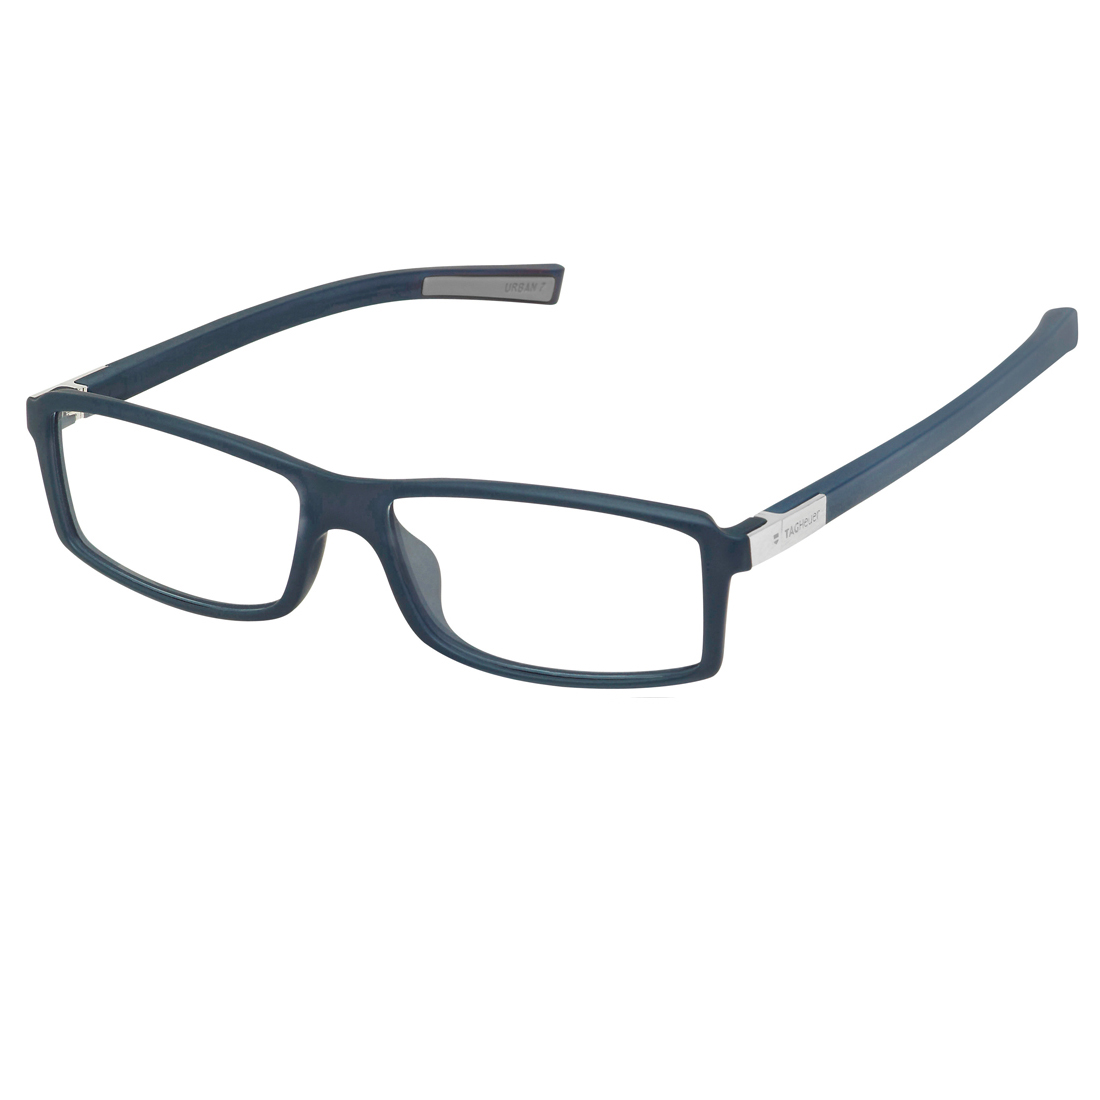 Eyeglasses Frames Tag Heuer : Expensive Mens Watches: Tag Heuer Urban 7 Eyeglasses